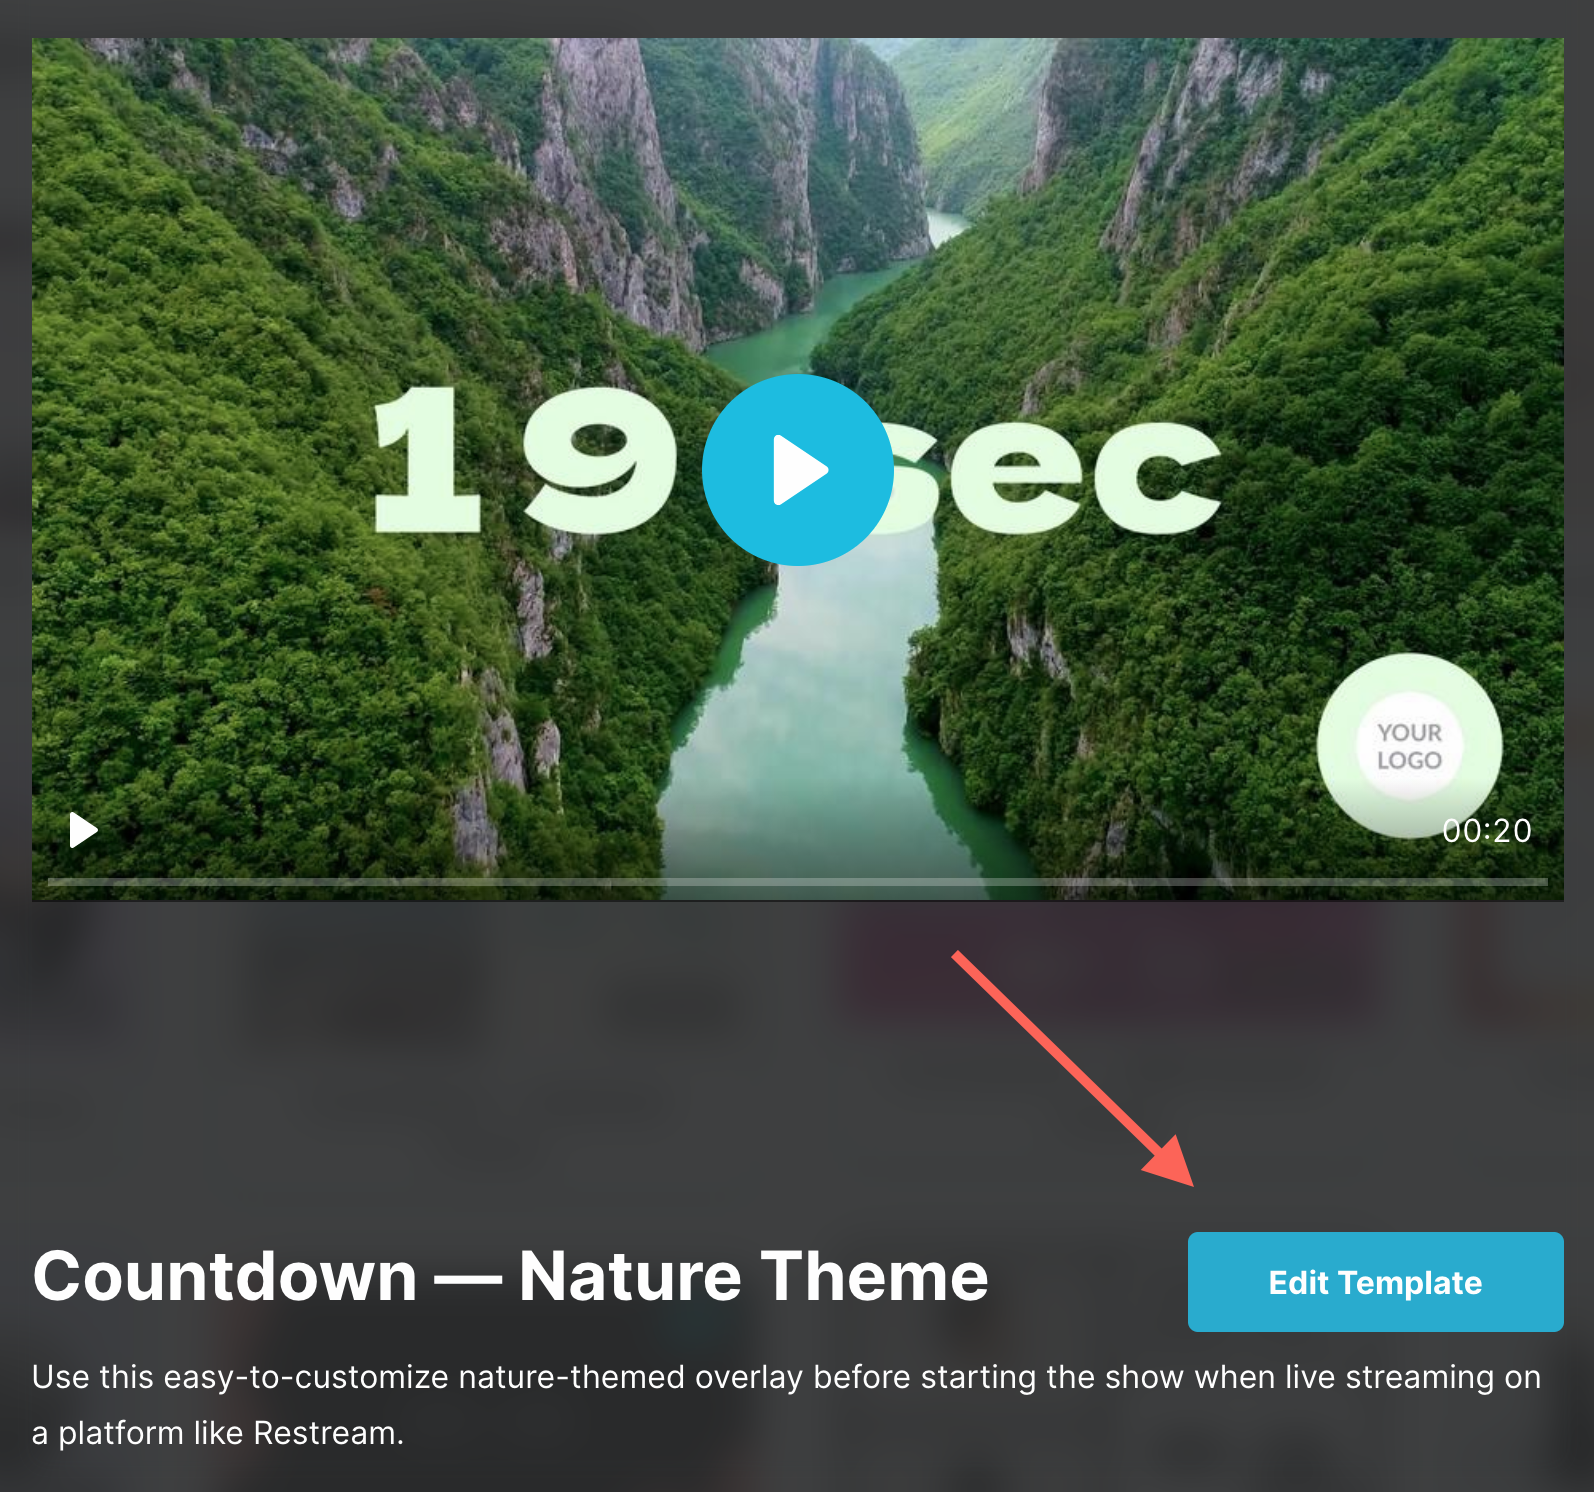 Select a countdown timer template